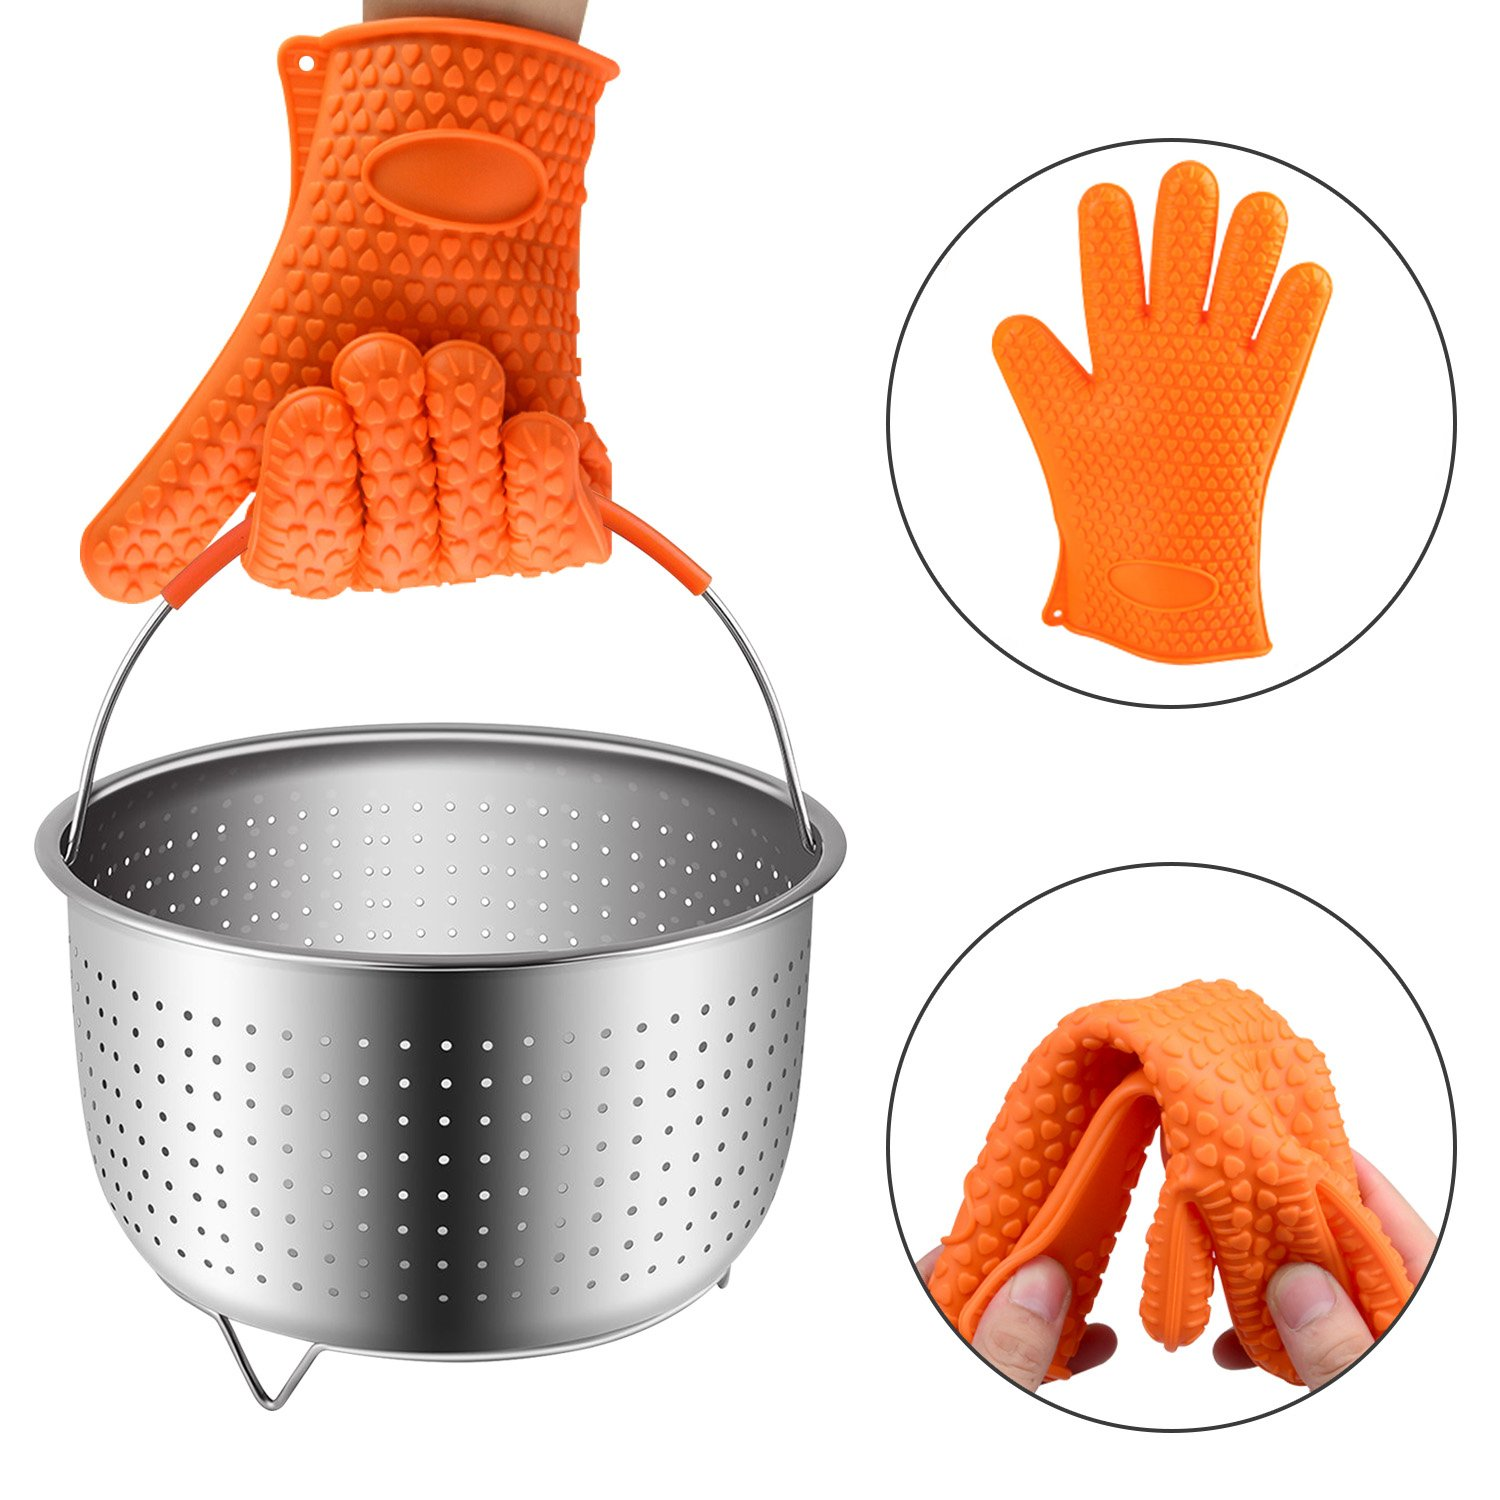 HomeeFly Steamer Basket Instant Pot 6 8 Quart Accessories,Stainless Steel Strainer Insert fits IP Insta Pot,Instapot 6qt&8qt Pressure Cooker Heat Resistant Glove…